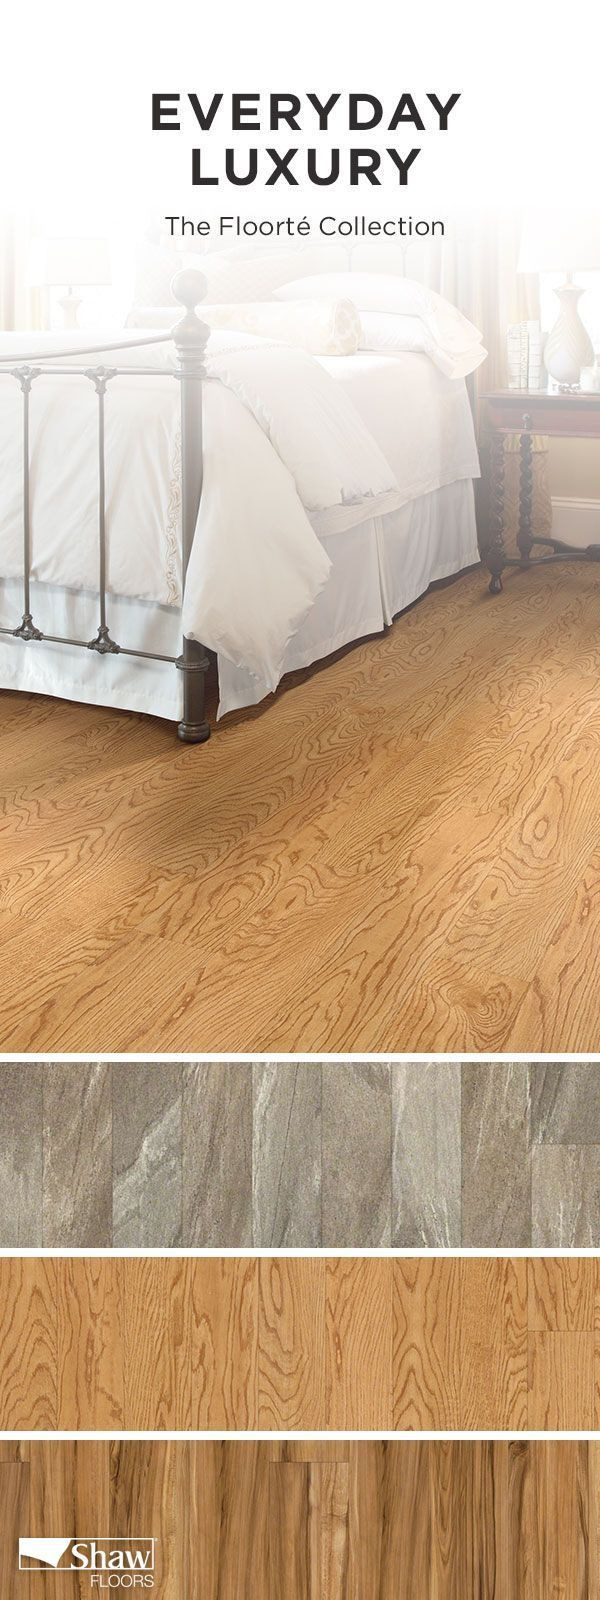 Hardwood Floor Refinishing toledo Of 261 Best Basement Flooring Images On Pinterest Basement Basement Regarding whether Youre Looking for Kitchen Floors or Basement Floors Luxury Vinyl Plank Flooring Should Be On Your List Of Considerations